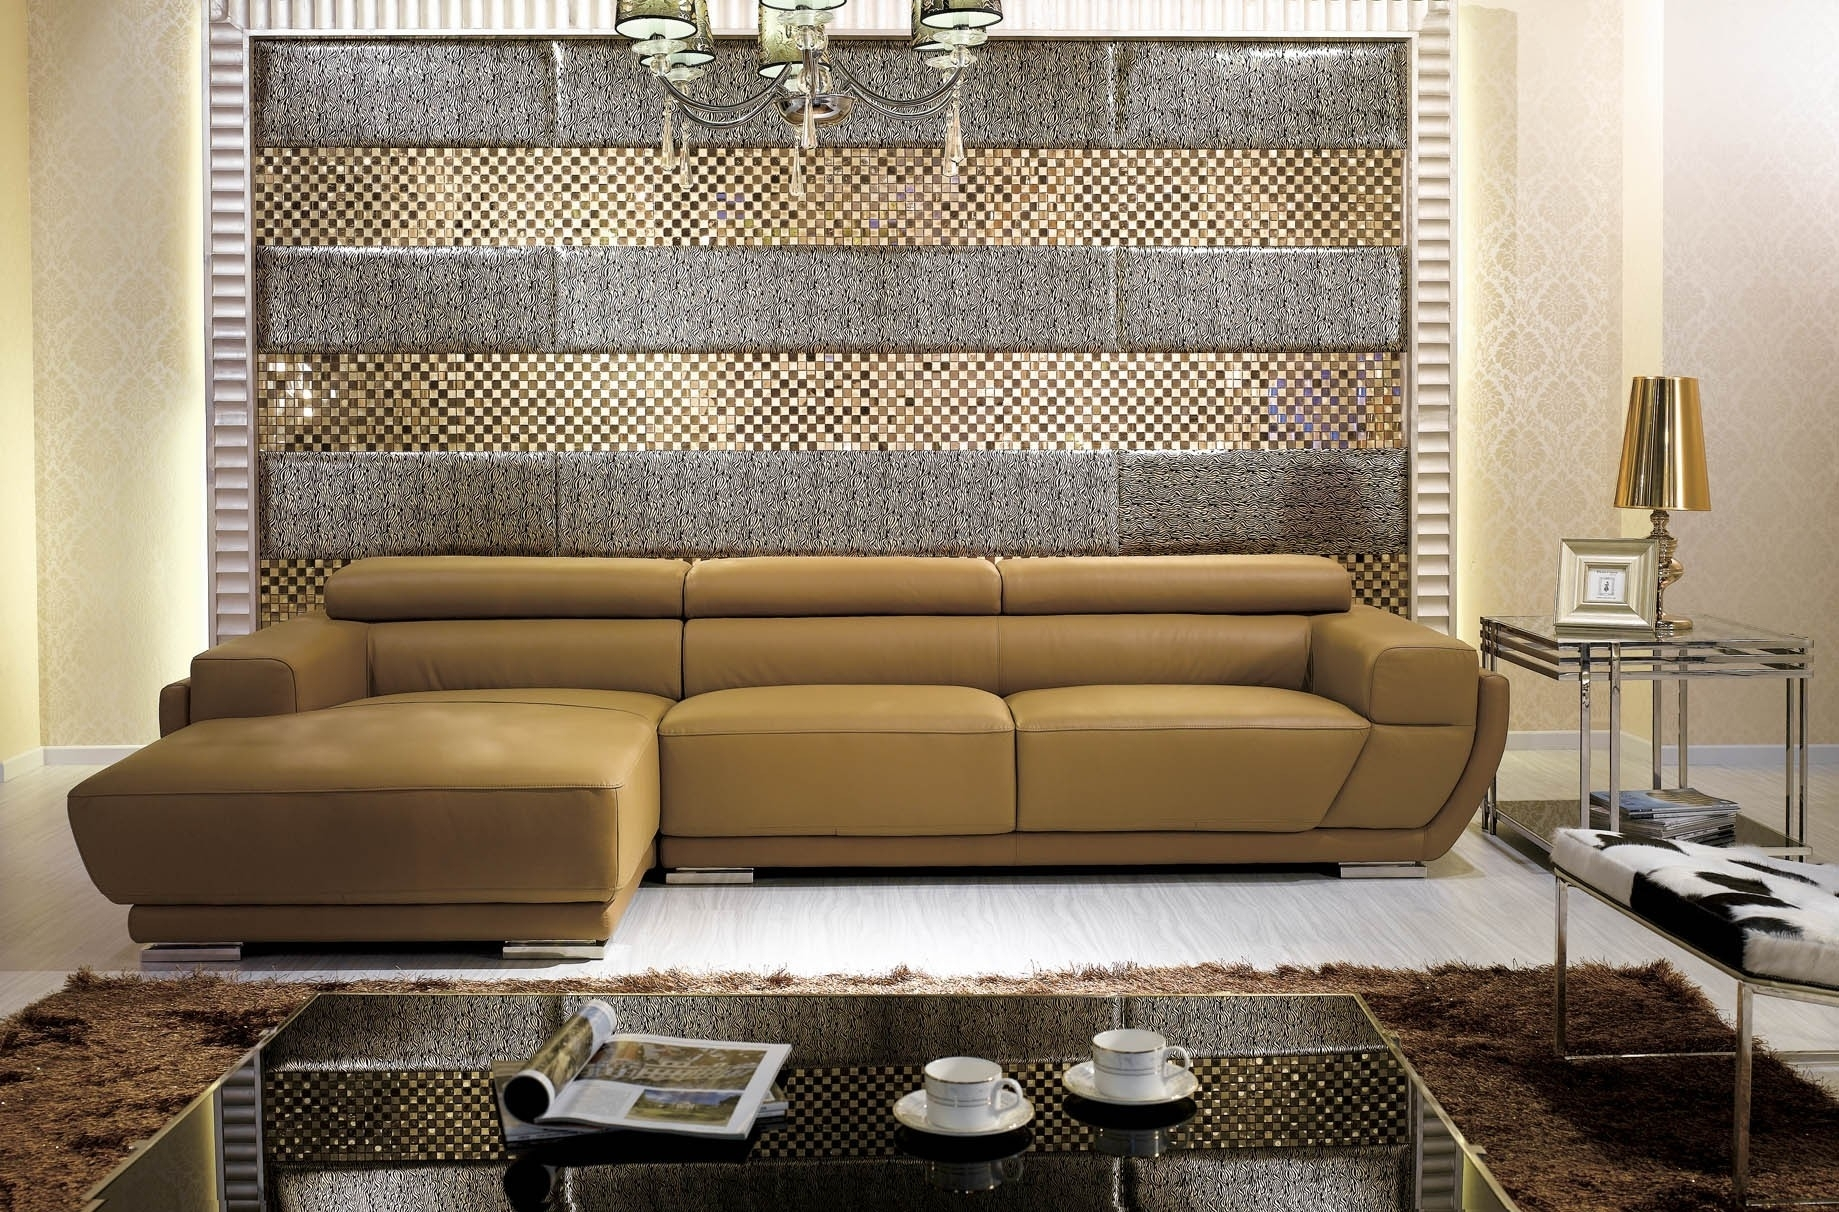 More Views K Modern Camel Italian Leather Sectional Sofa | Modern Throughout Camel Sectional Sofas (View 9 of 10)